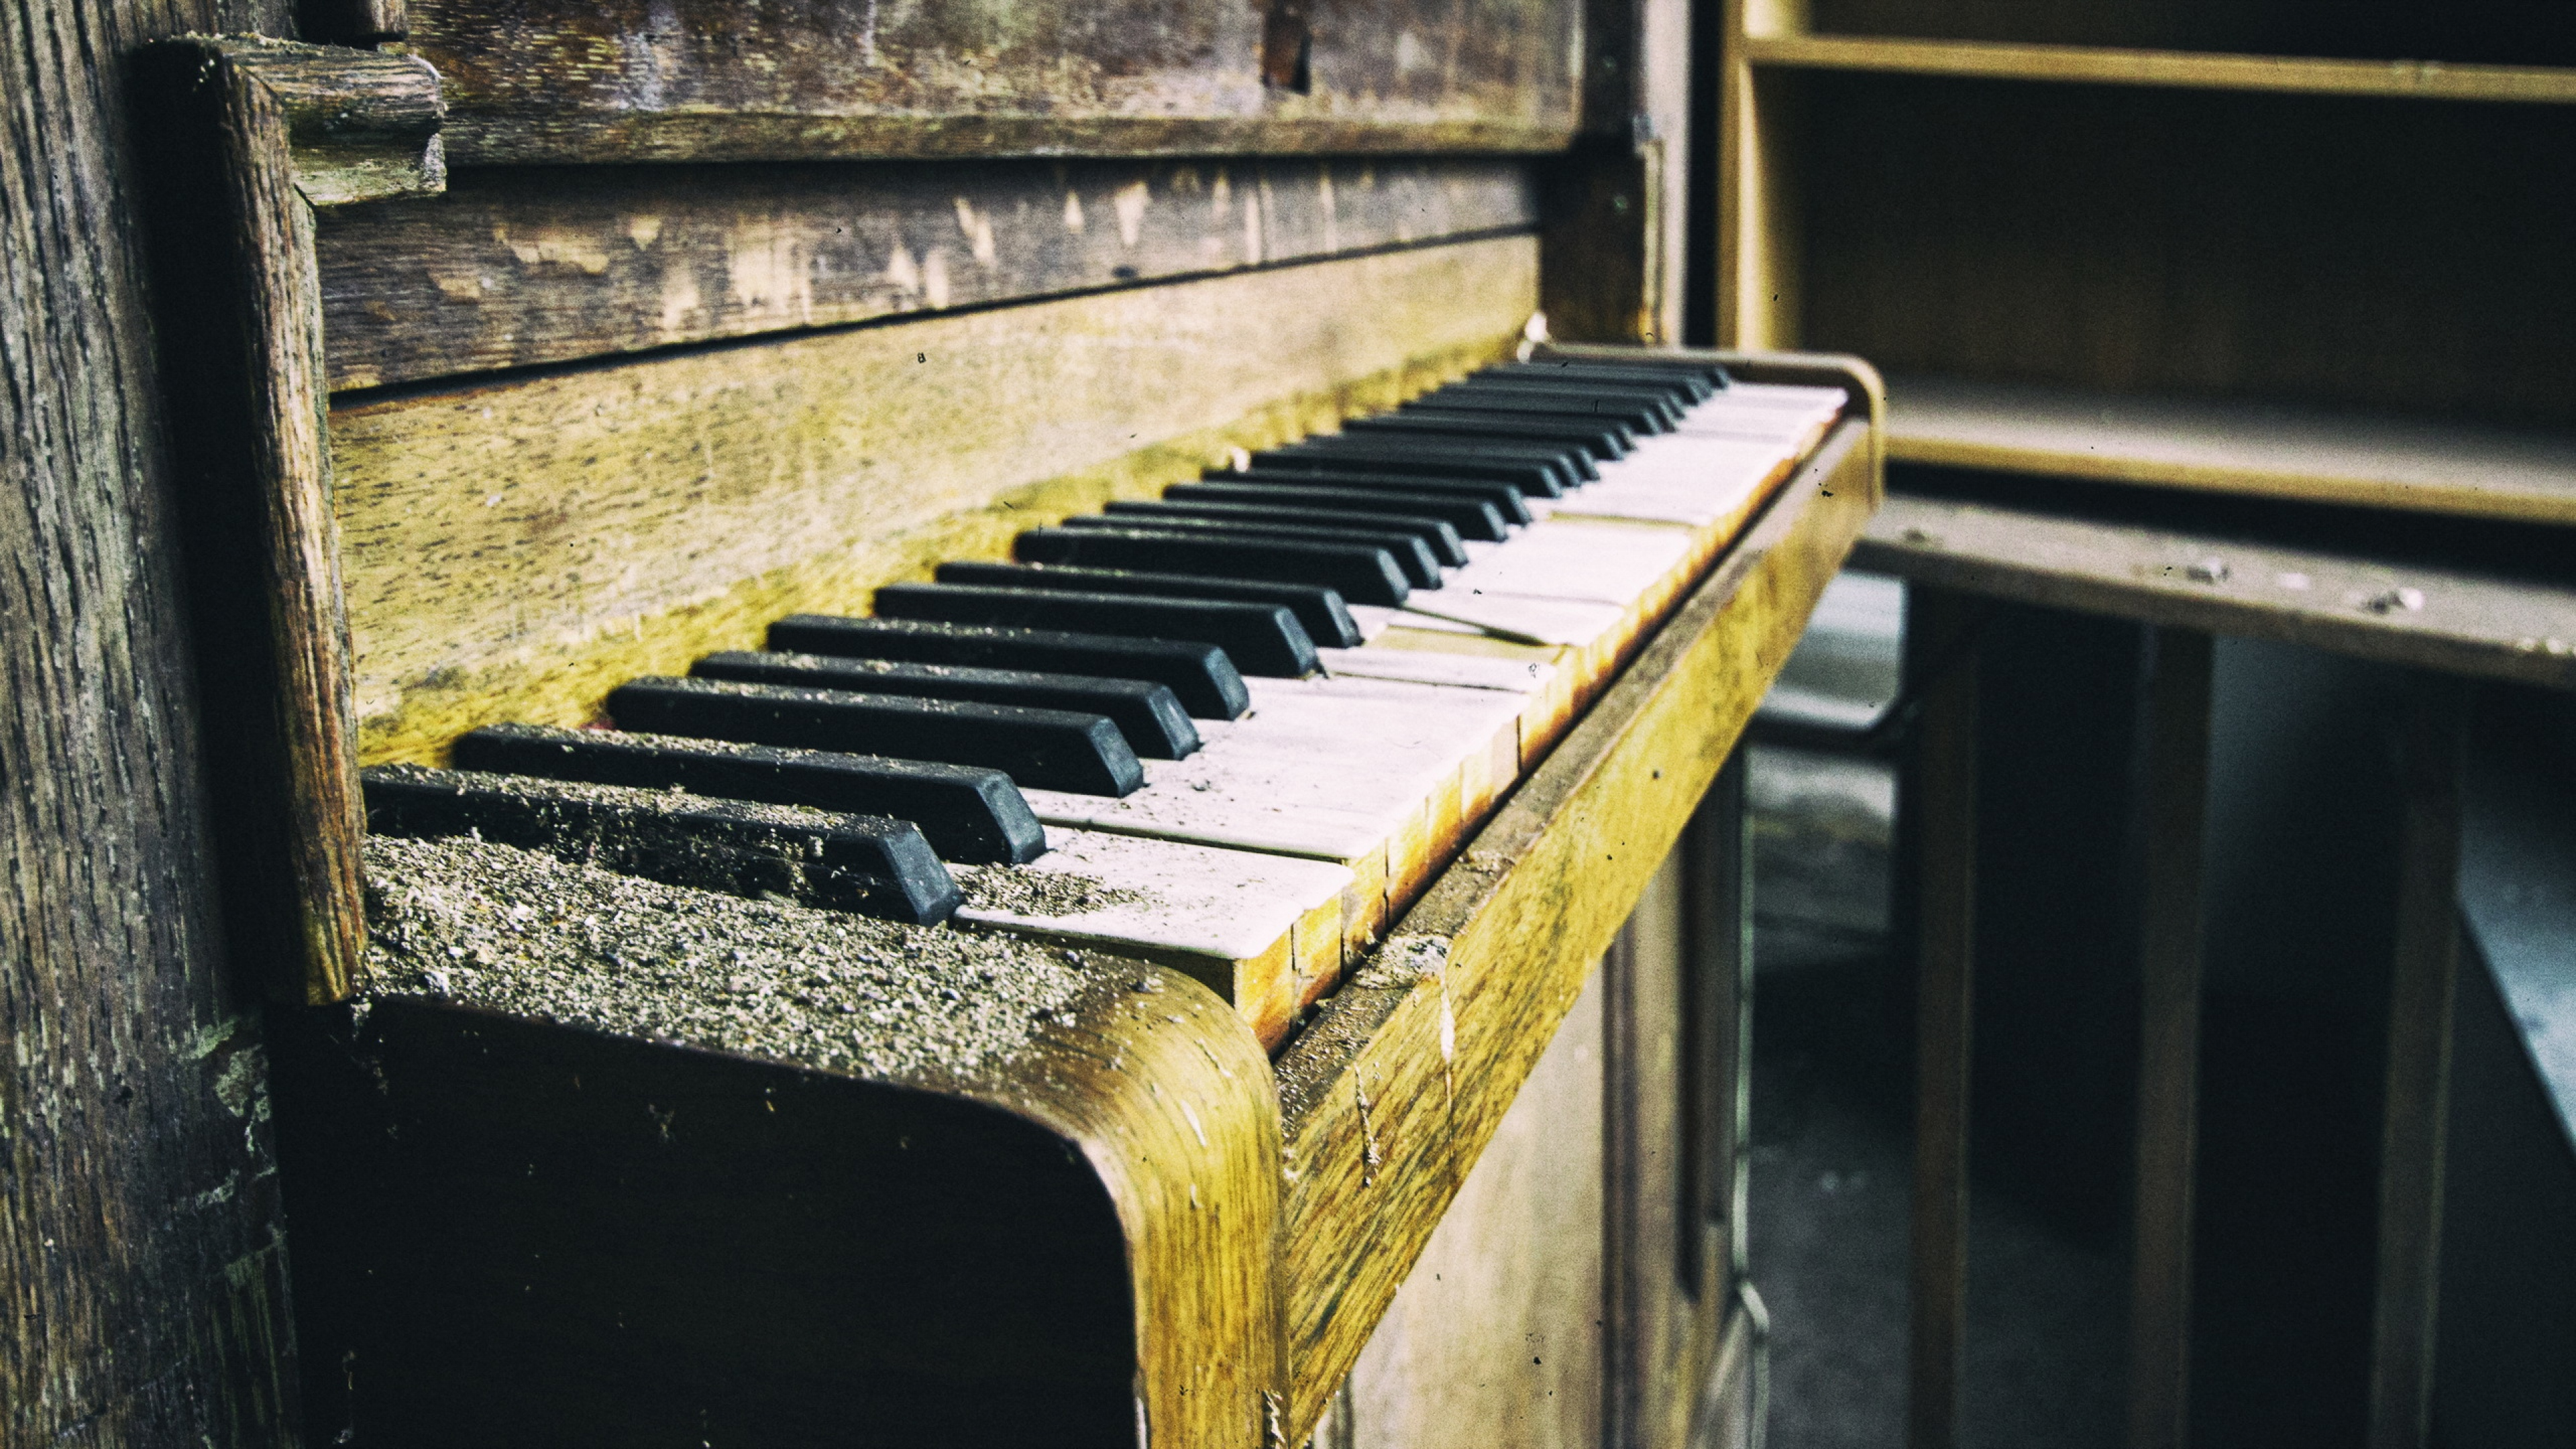 Piano Music Wallpaper: Piano Old, HD Music, 4k Wallpapers, Images, Backgrounds